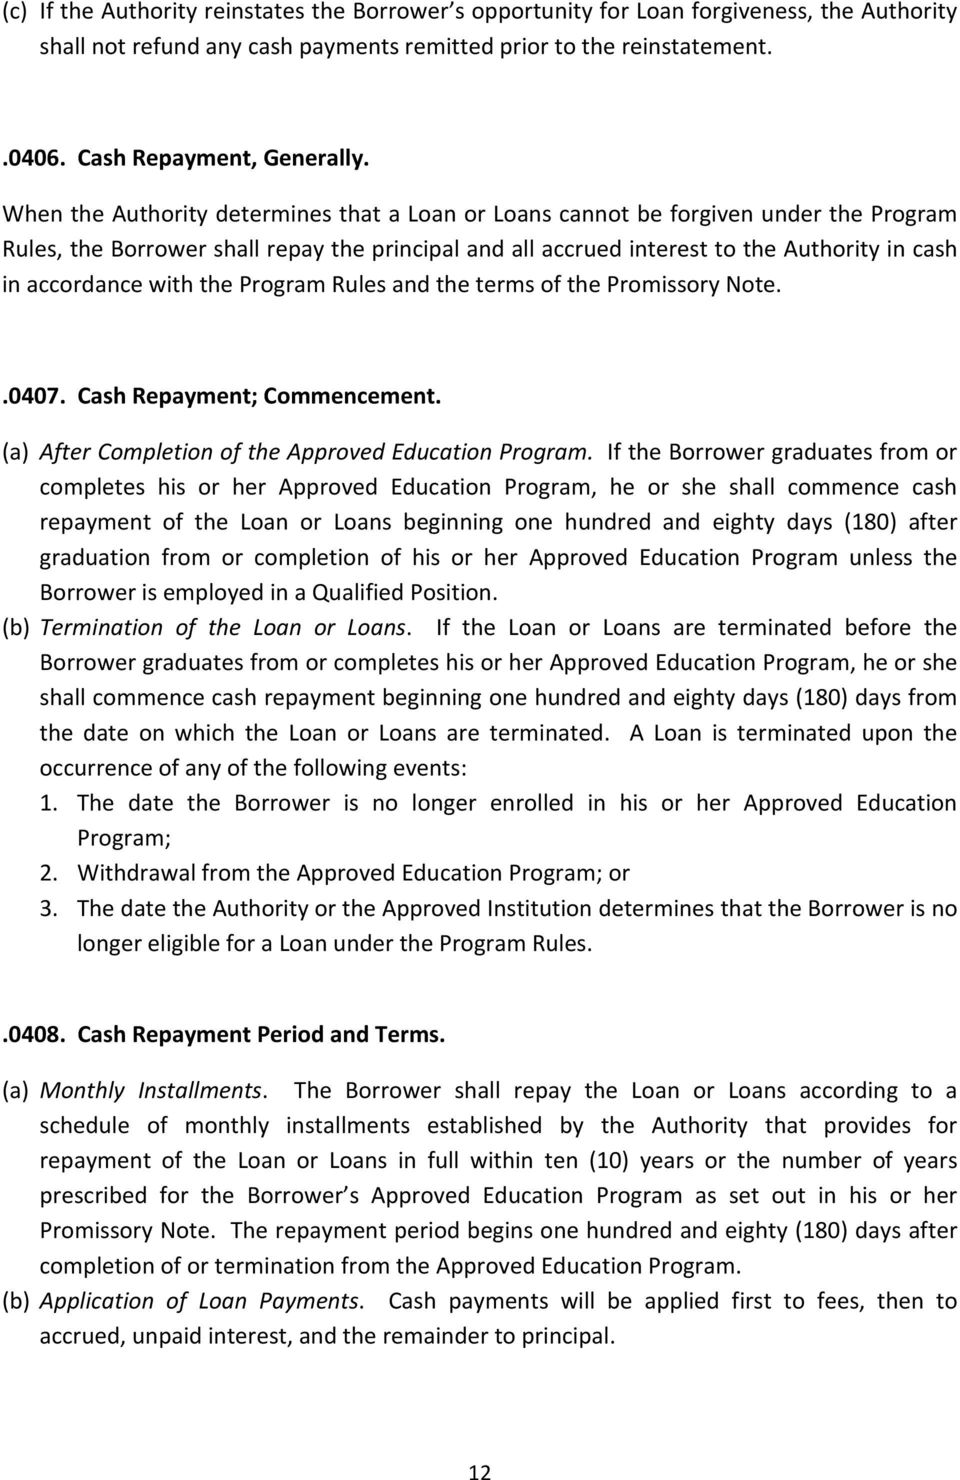 with the Program Rules and the terms of the Promissory Note..0407. Cash Repayment; Commencement. (a) After Completion of the Approved Education Program.